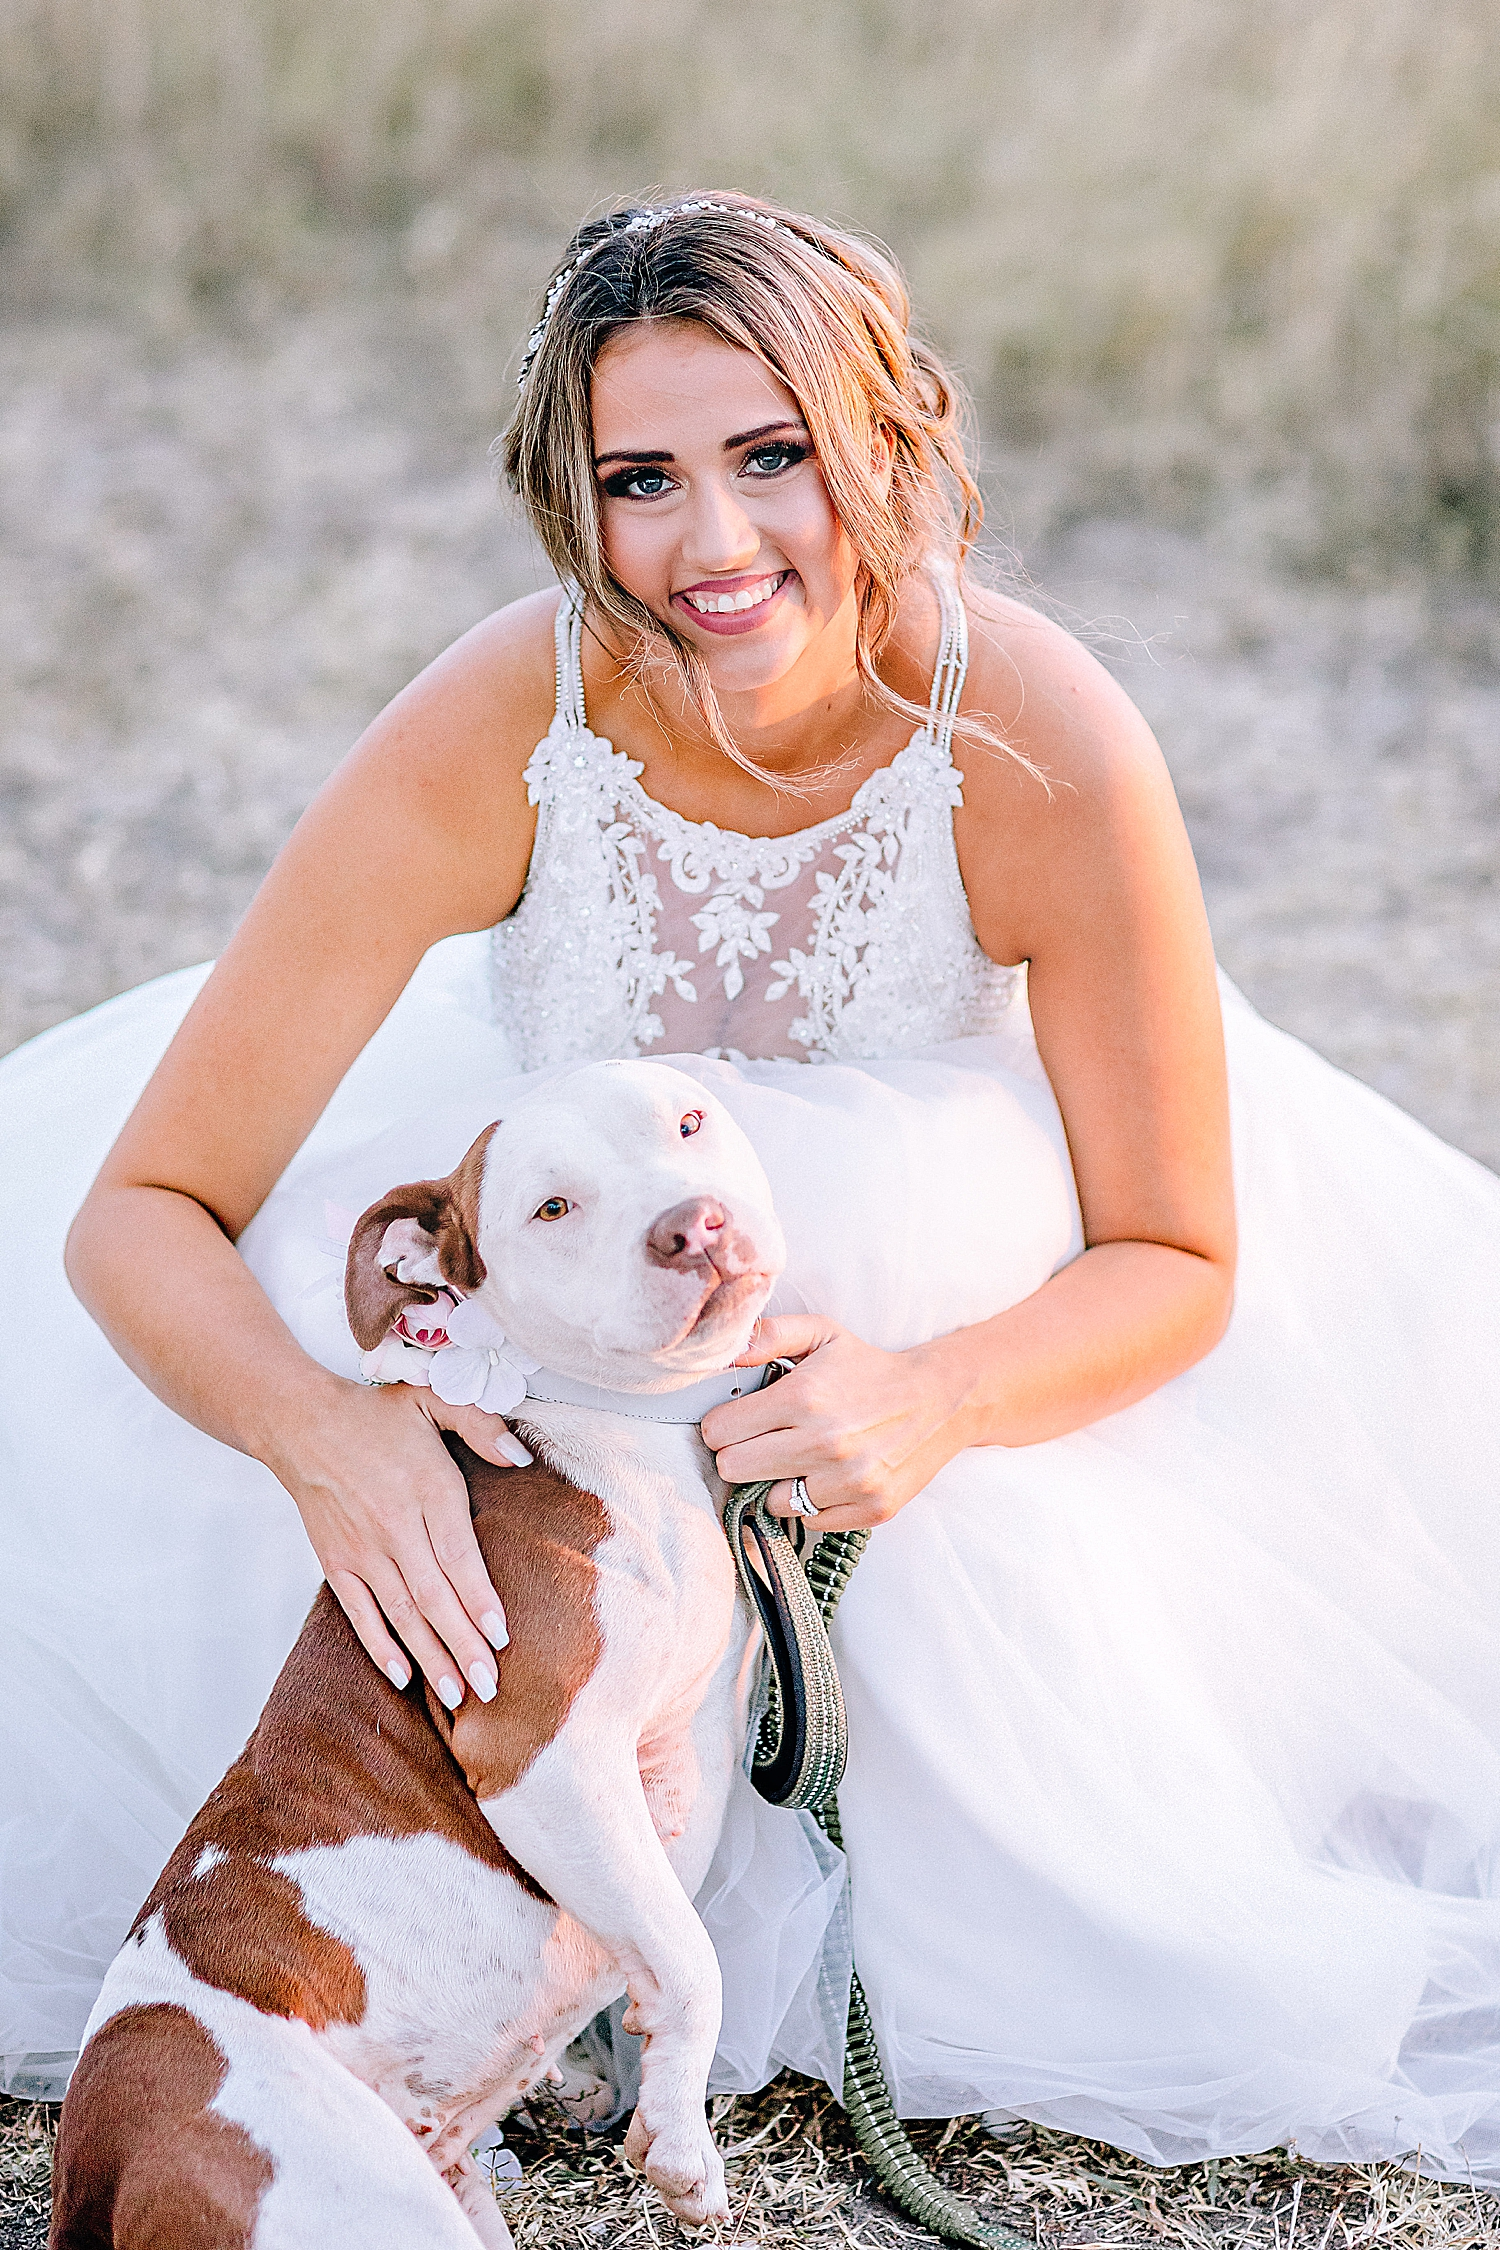 Allen-Farmhaus-New-Braunfels-Wedding-Carly-Barton-Photography_0049.jpg